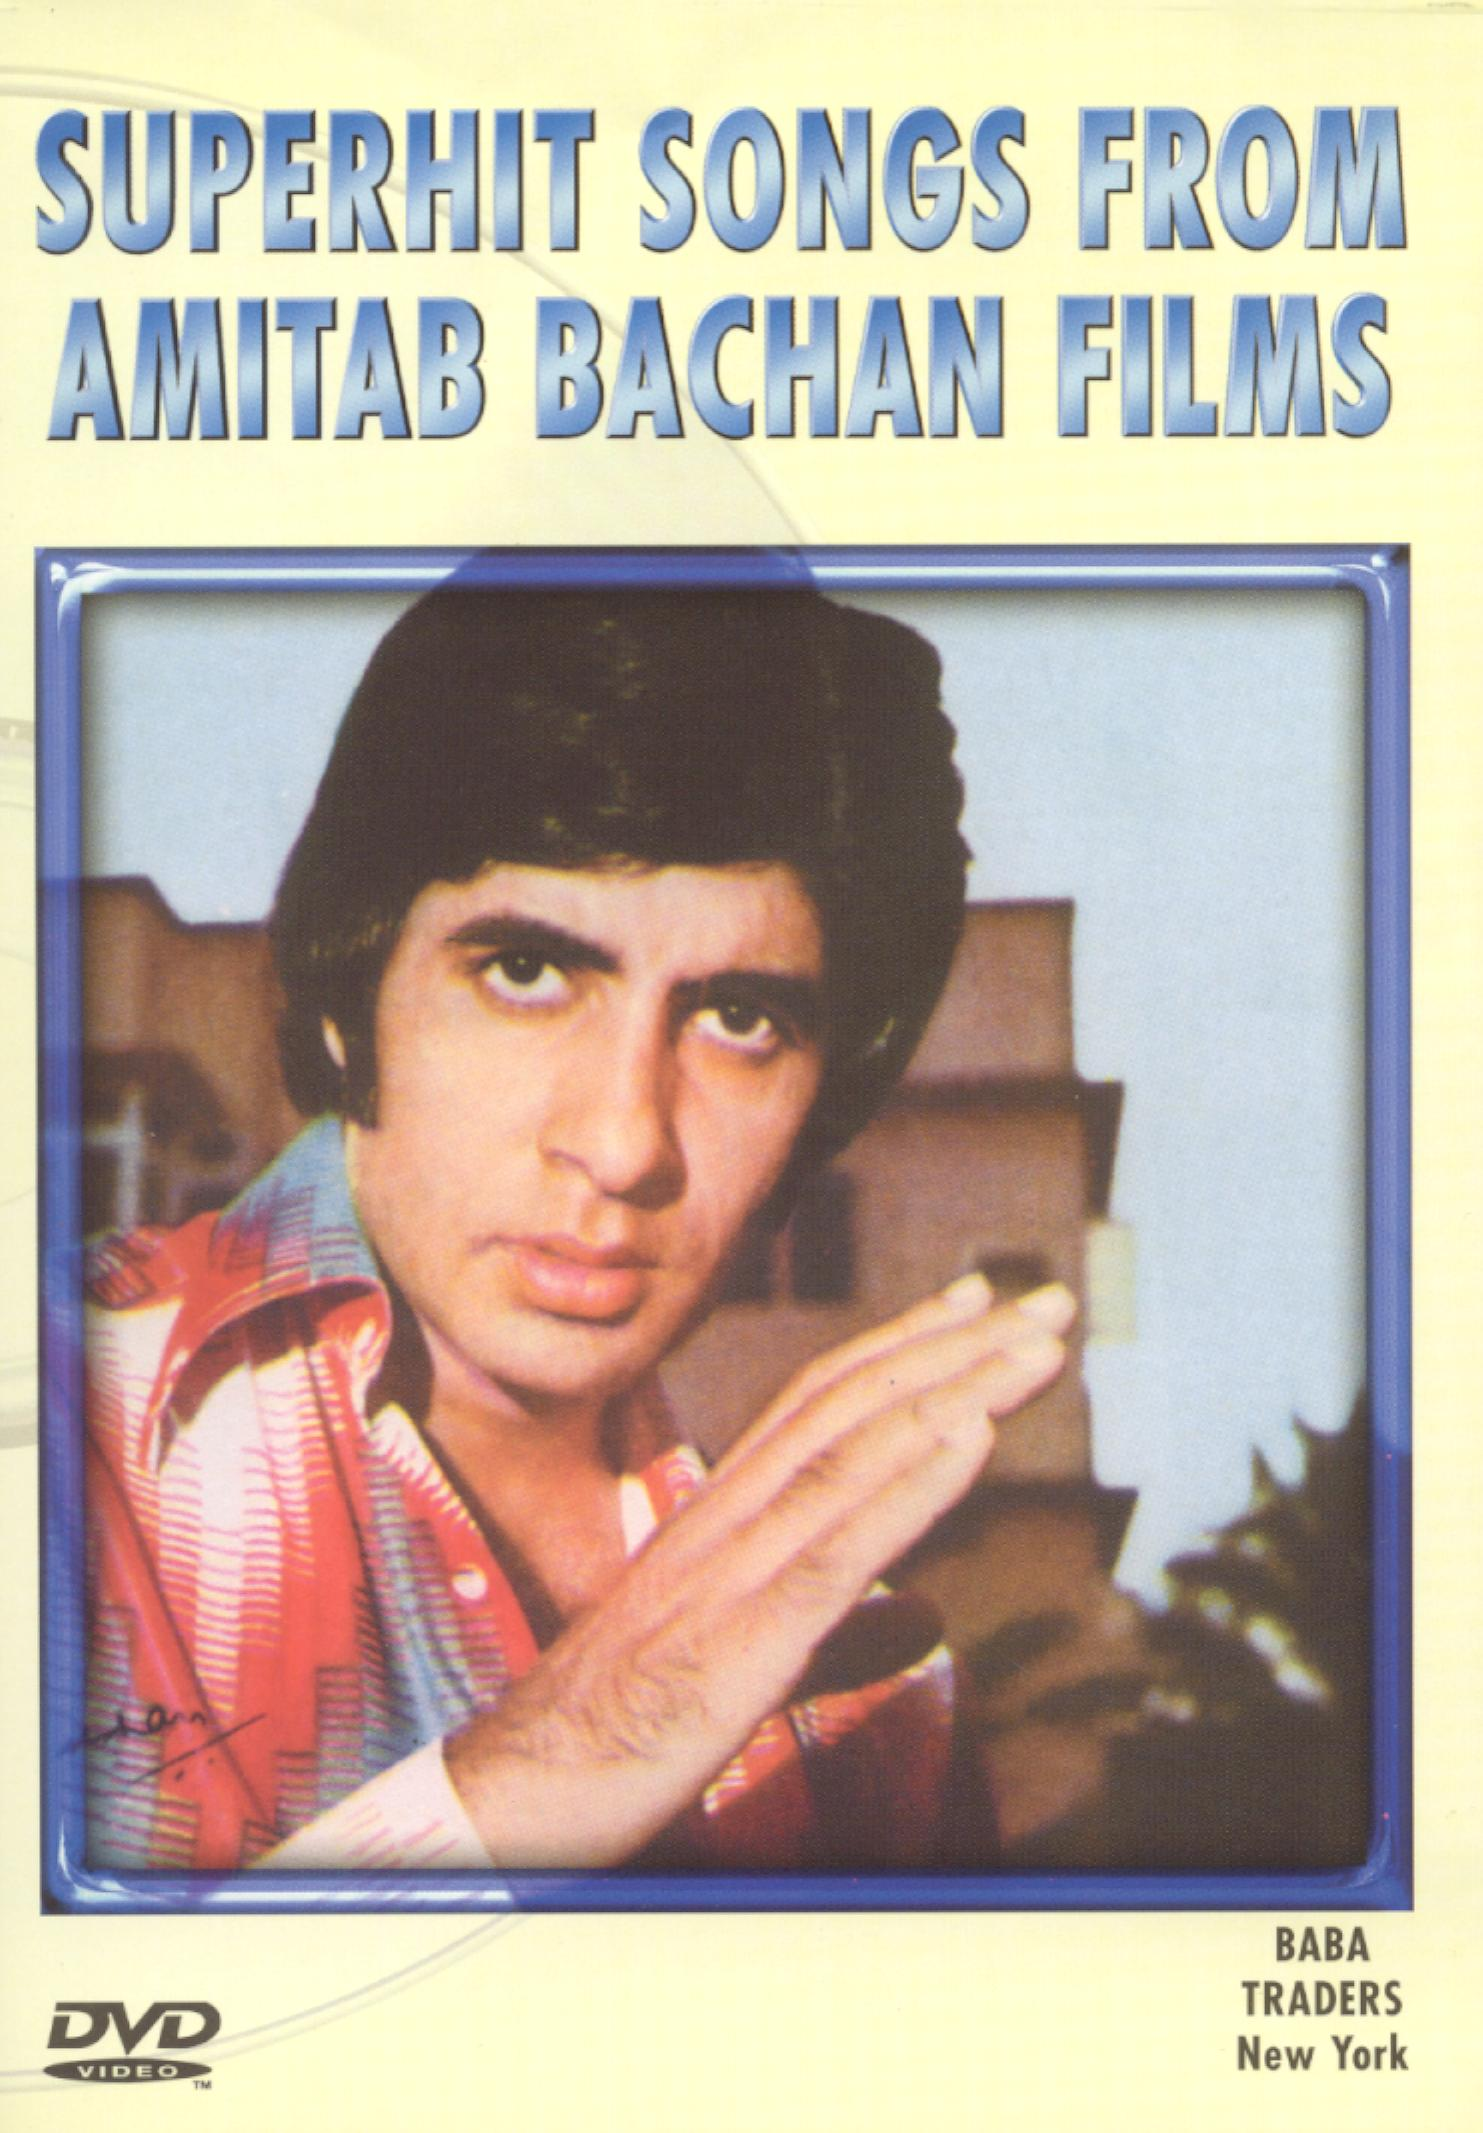 Superhit Songs From Amitab Bachan Films